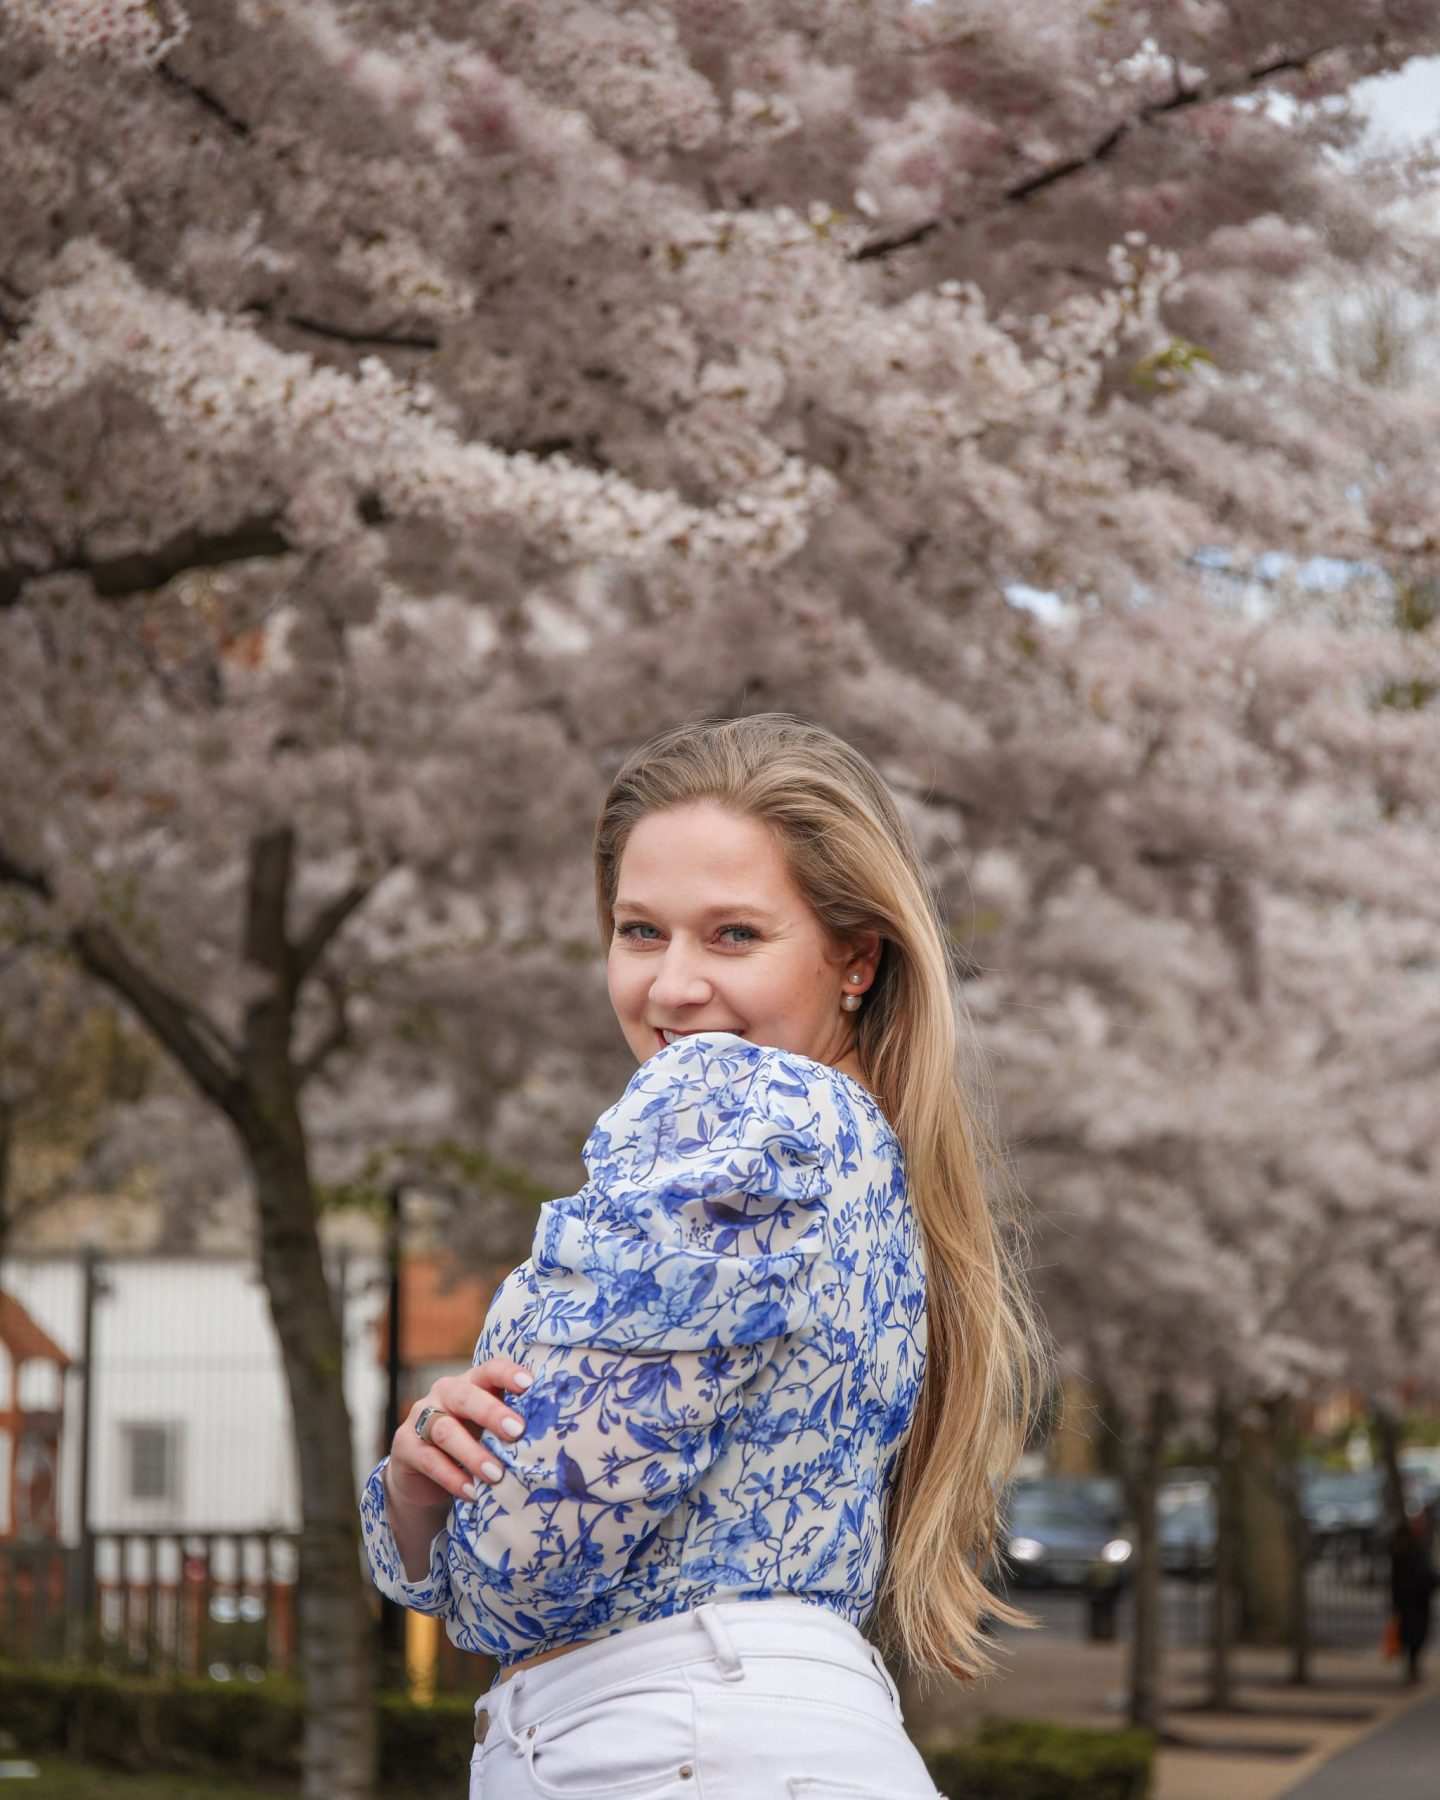 Floral Lace Coat, White jeans and a blue and white porcelain top, Katie Heath, Kalanchoe